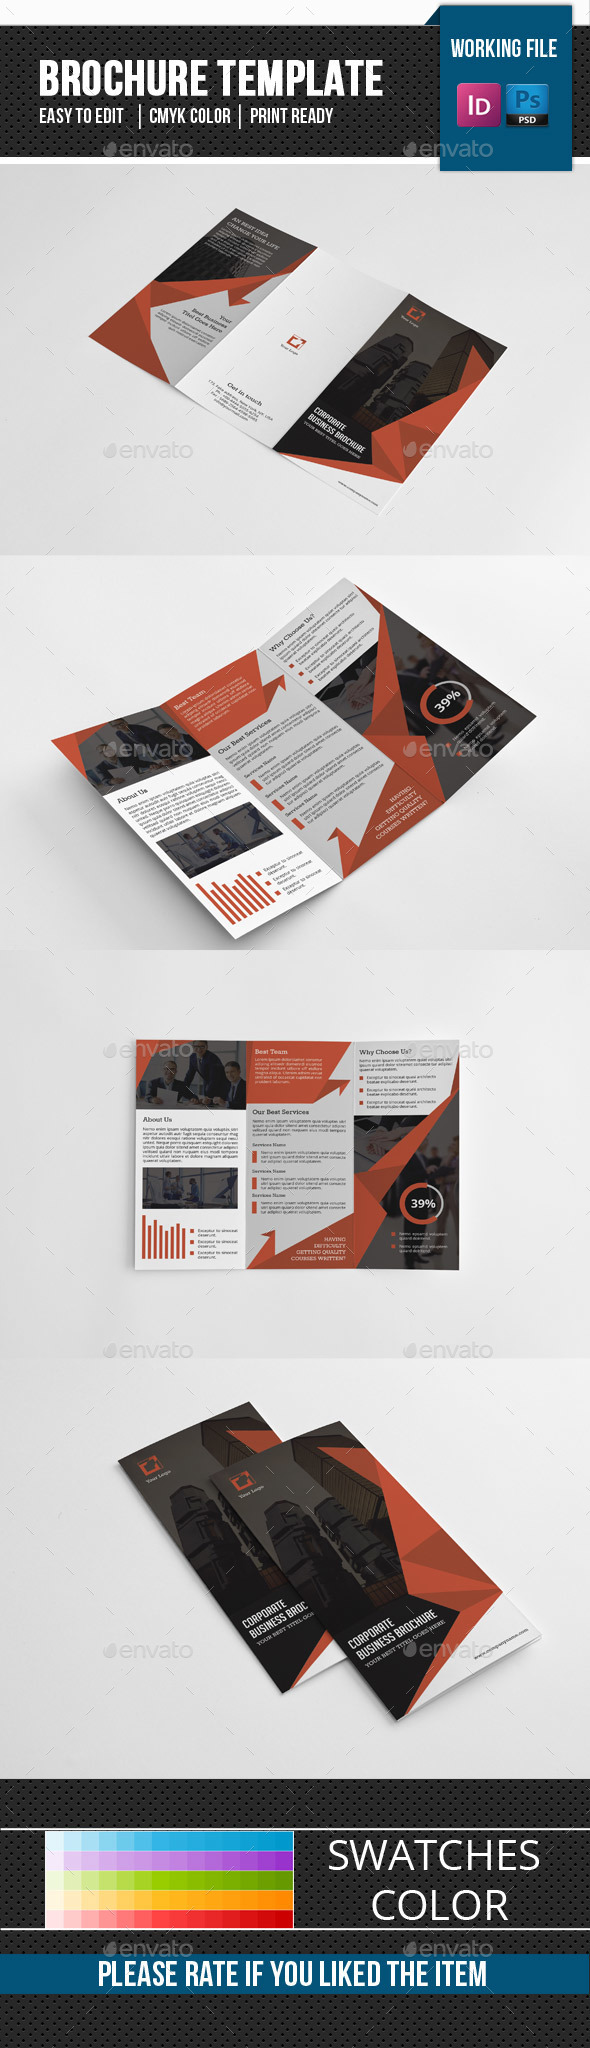 Corporate Trifold Brochure-V278 - Corporate Brochures